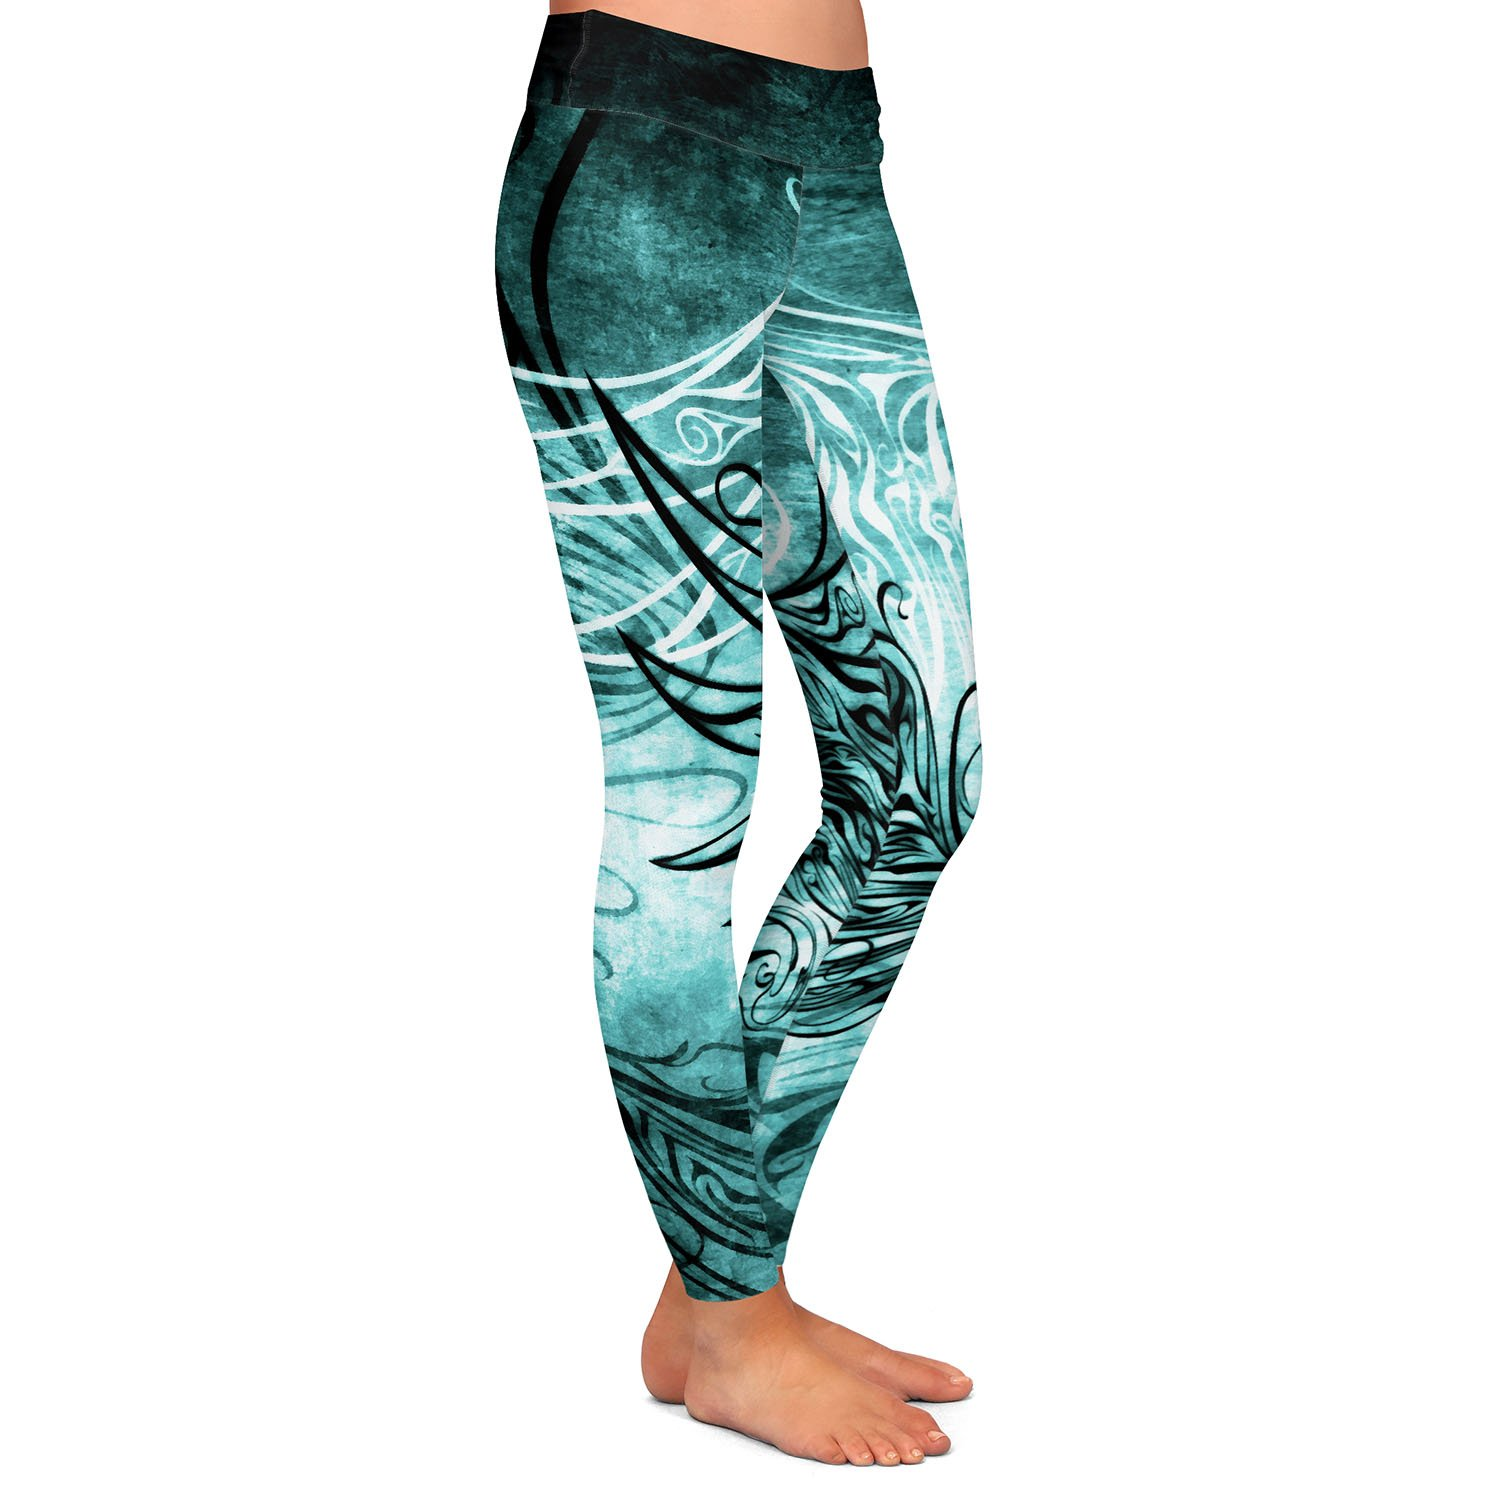 Bird Gothic Aqua Athletic Yoga Leggings from DiaNoche Designs by Angelina Vick